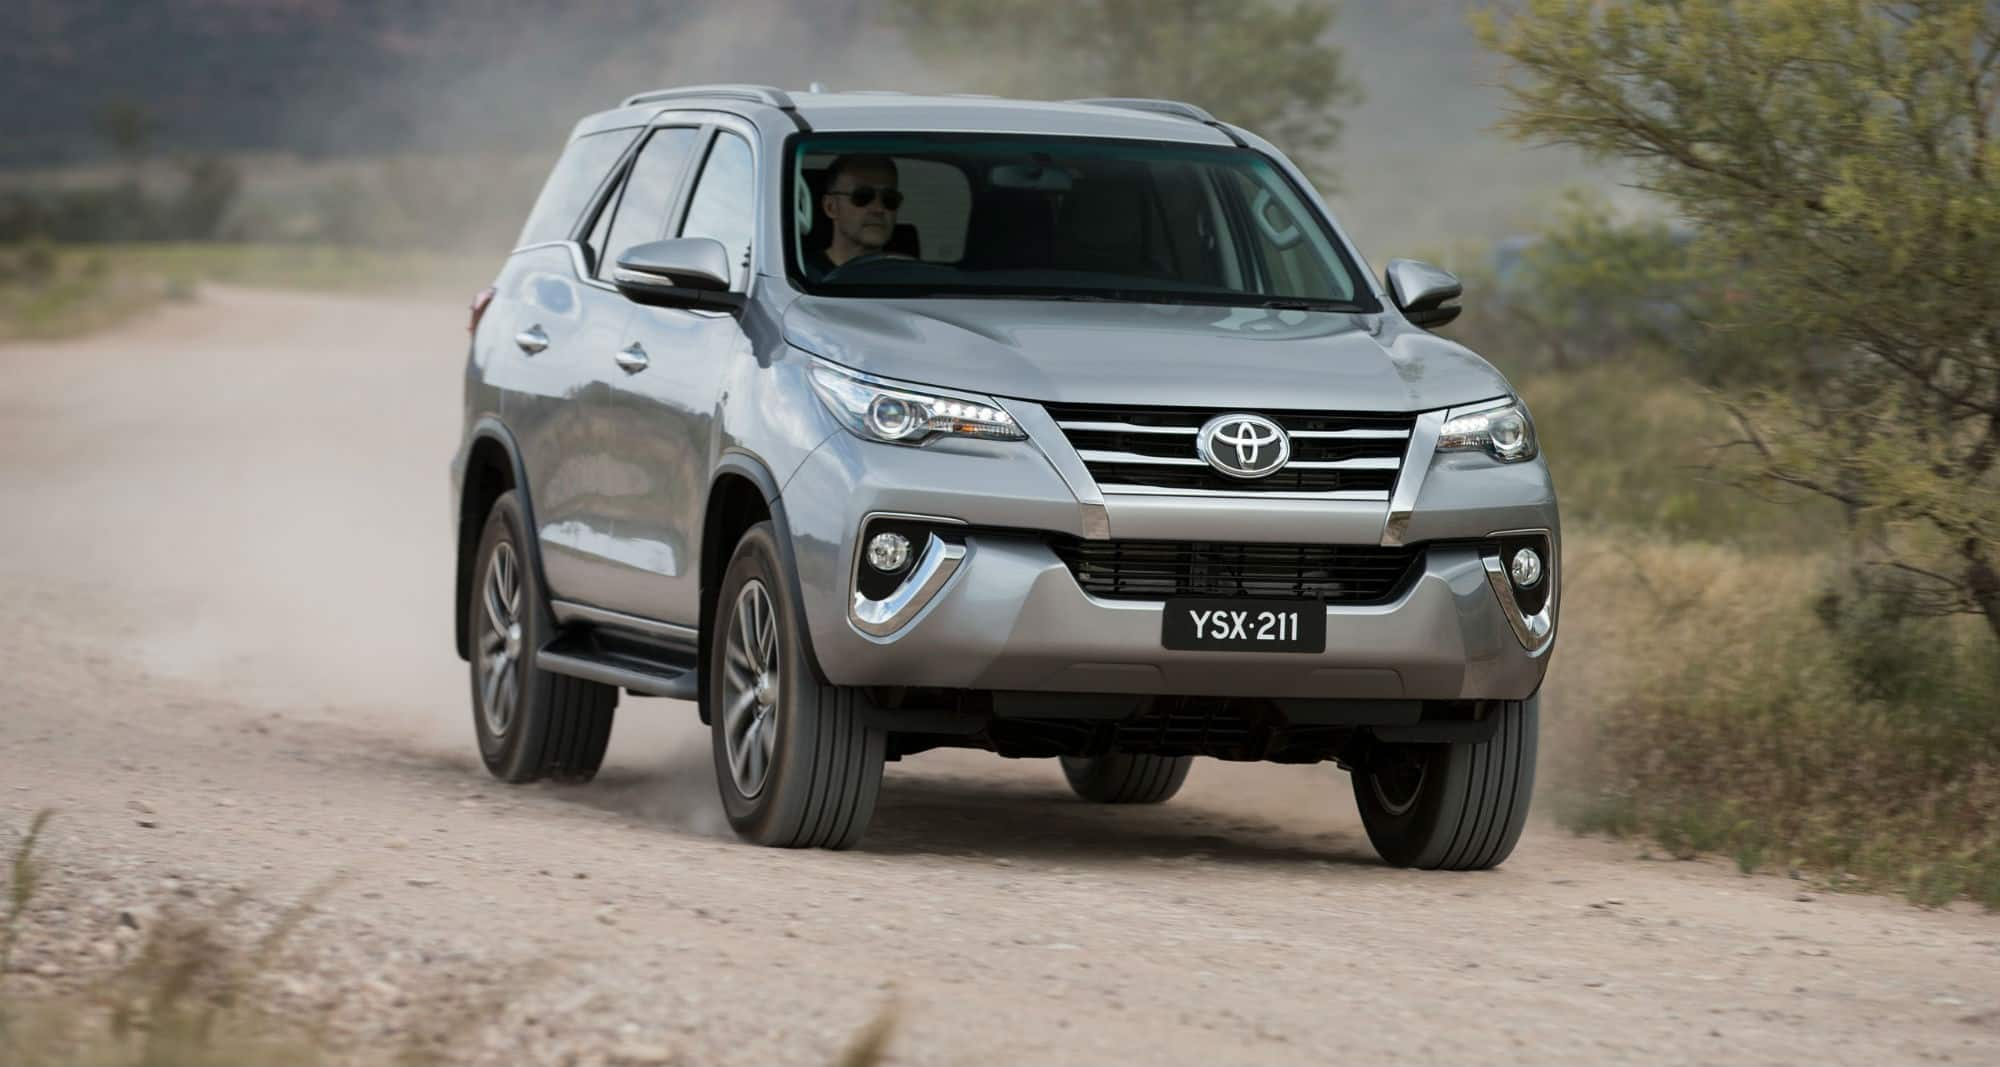 Toyota Expects Delhi Ncr To Contribute 5 10 Percent Sales Of Petrol Fortuner Find New